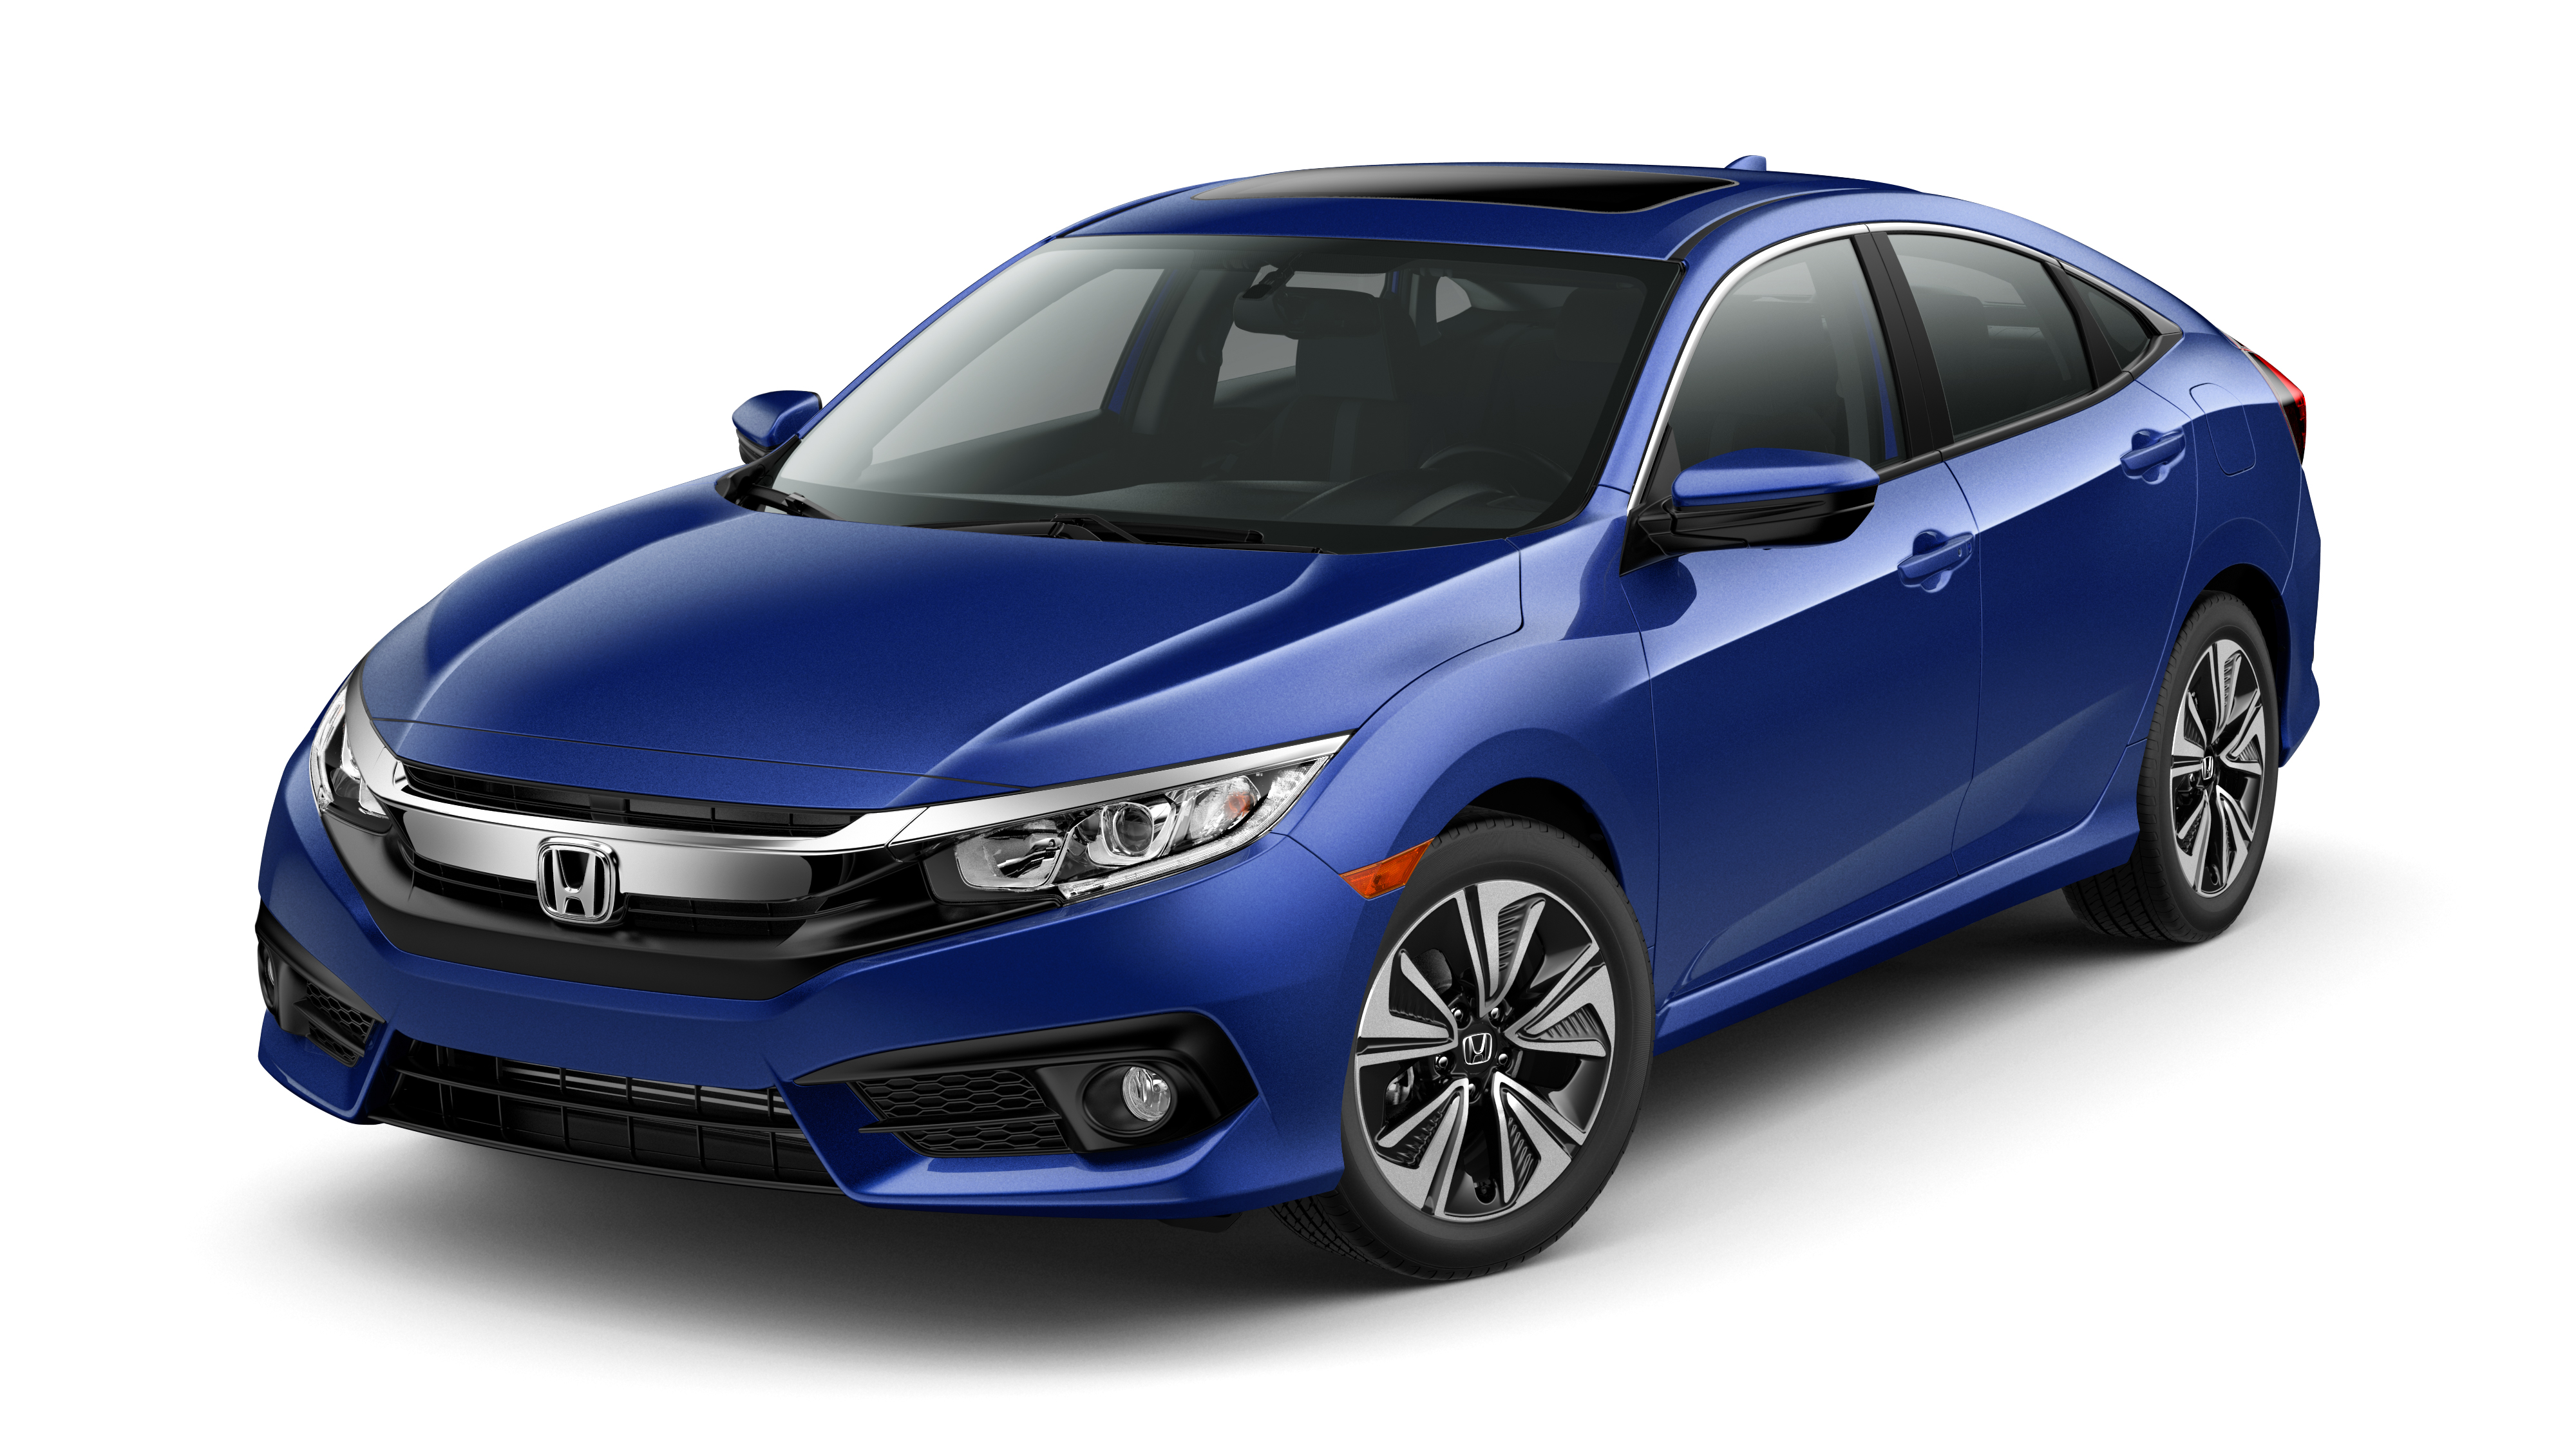 test out the new honda accord or honda civic in germantown at criswell honda